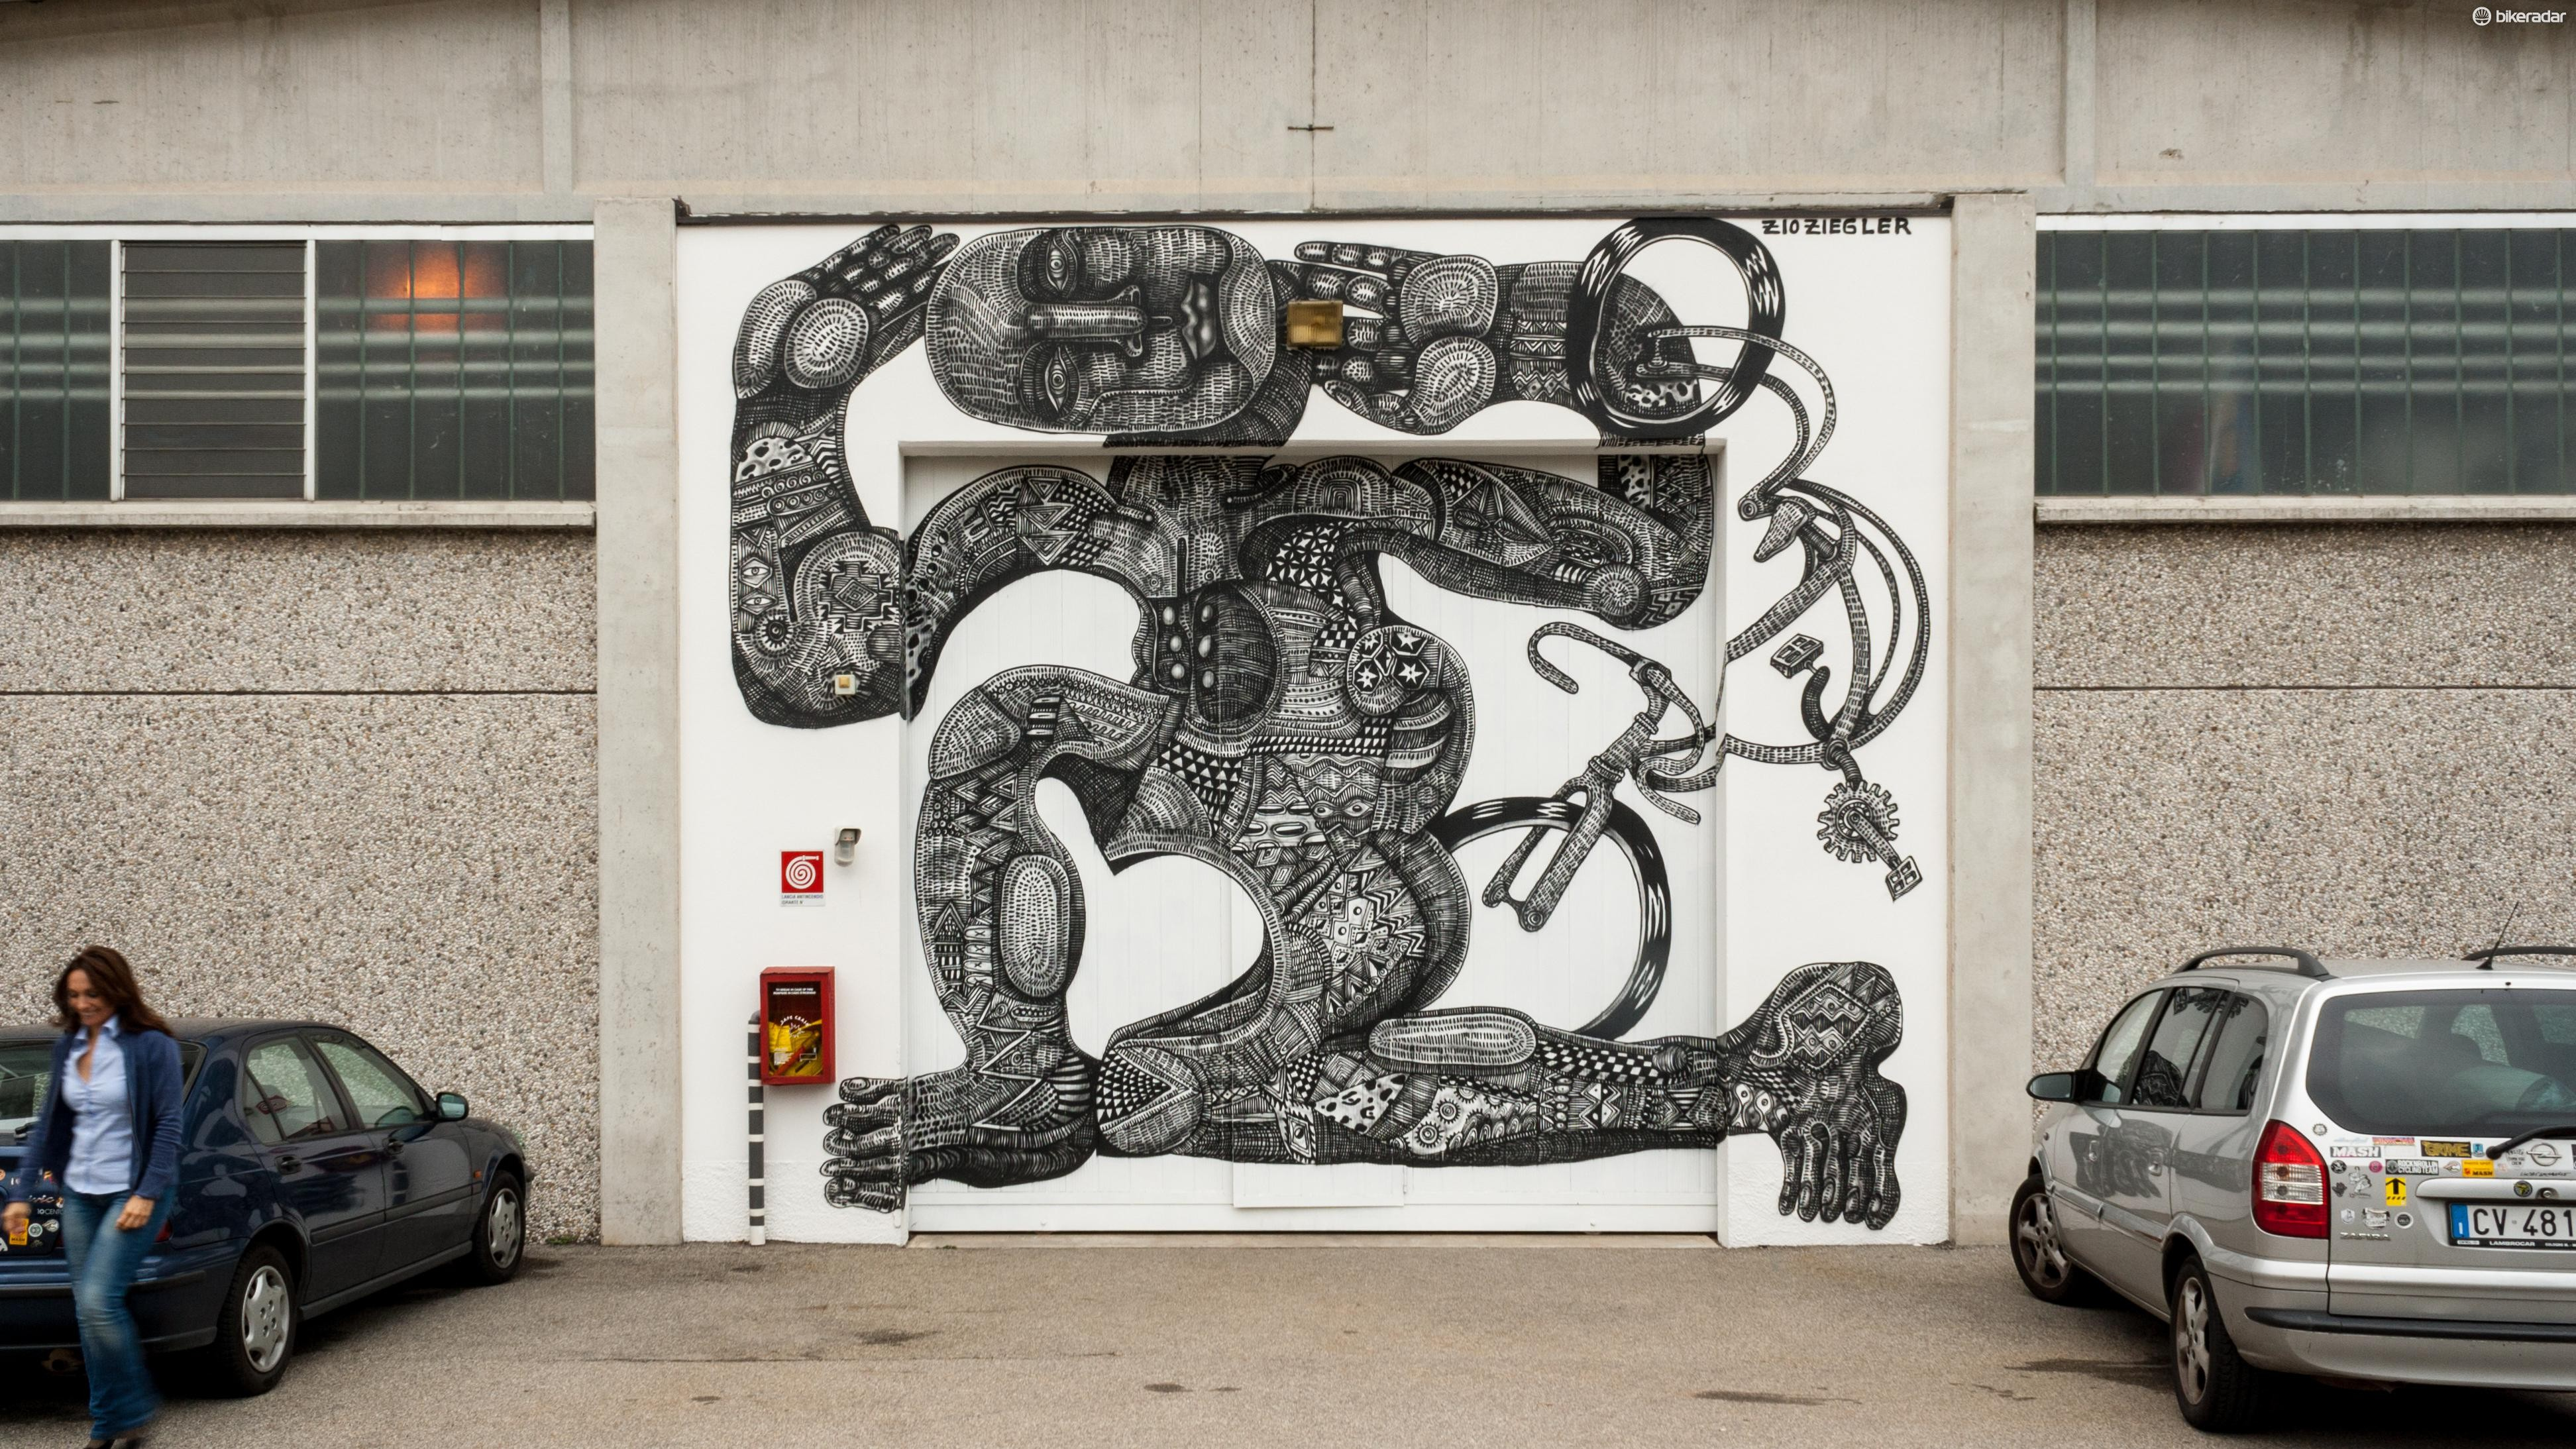 Street artist Z10 Ziegler has painted this figure on the entrance to the Columbus factory